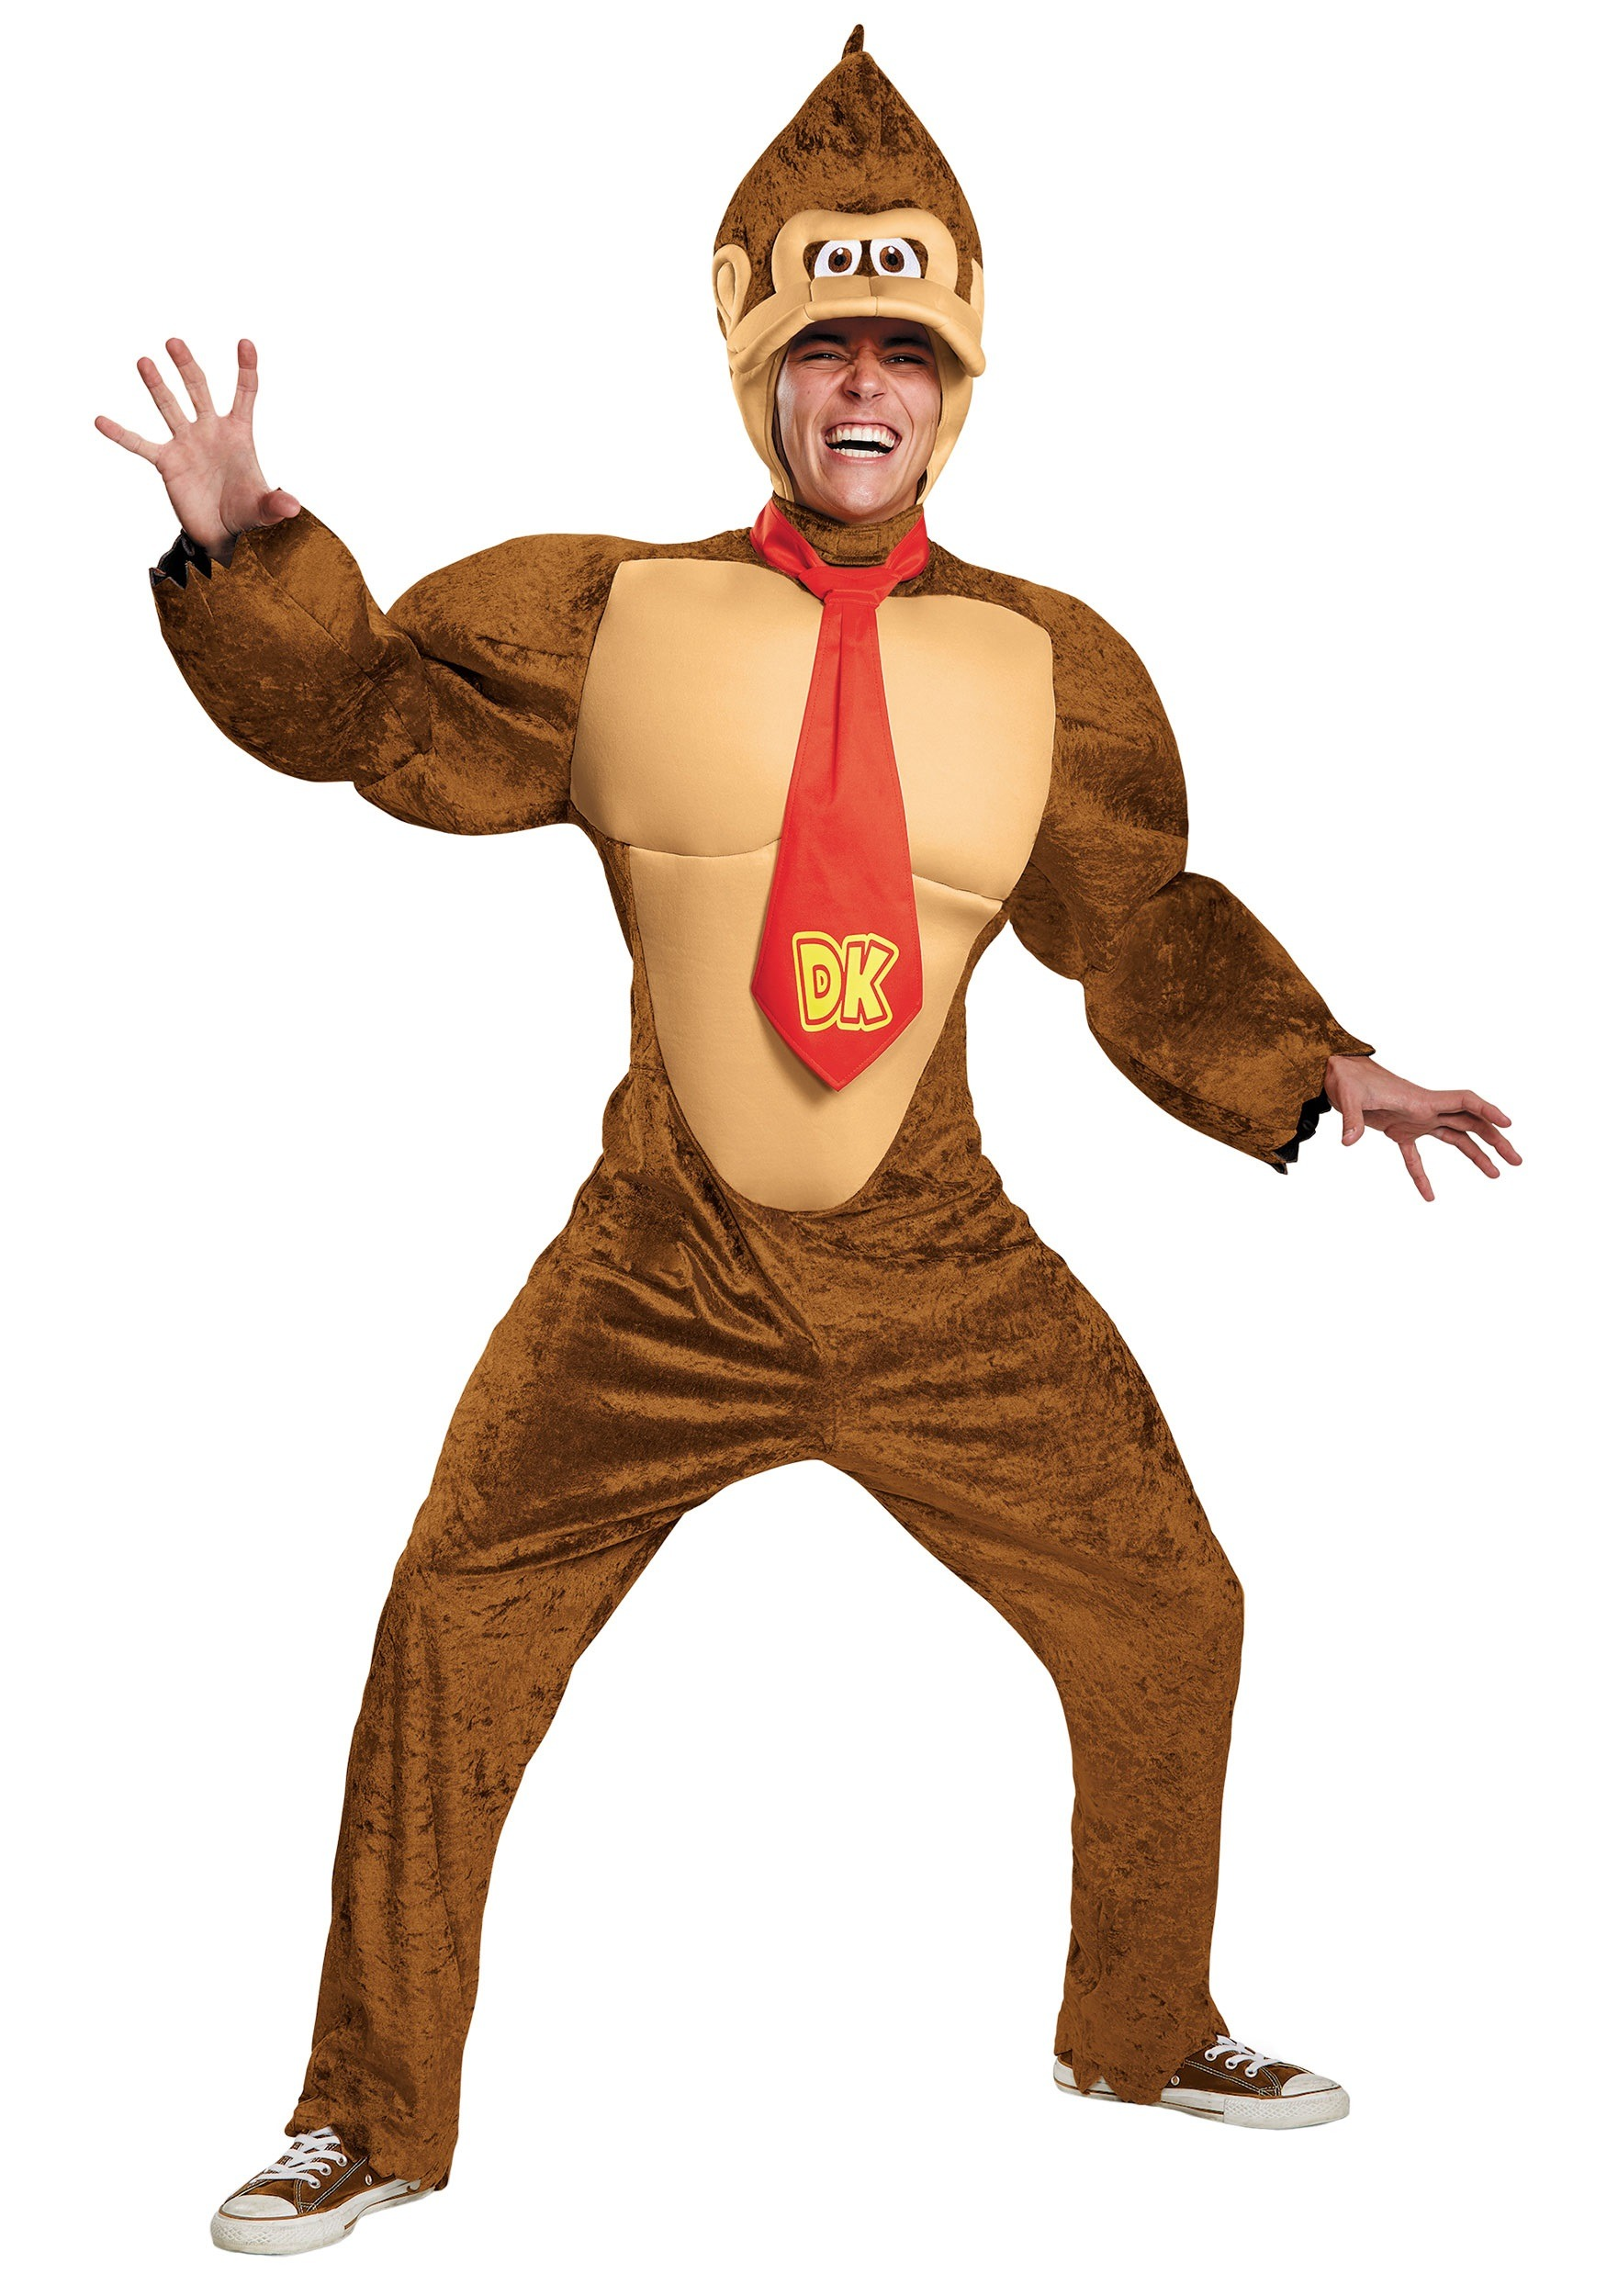 Plus Size Adult Deluxe Donkey Kong Costume 2X